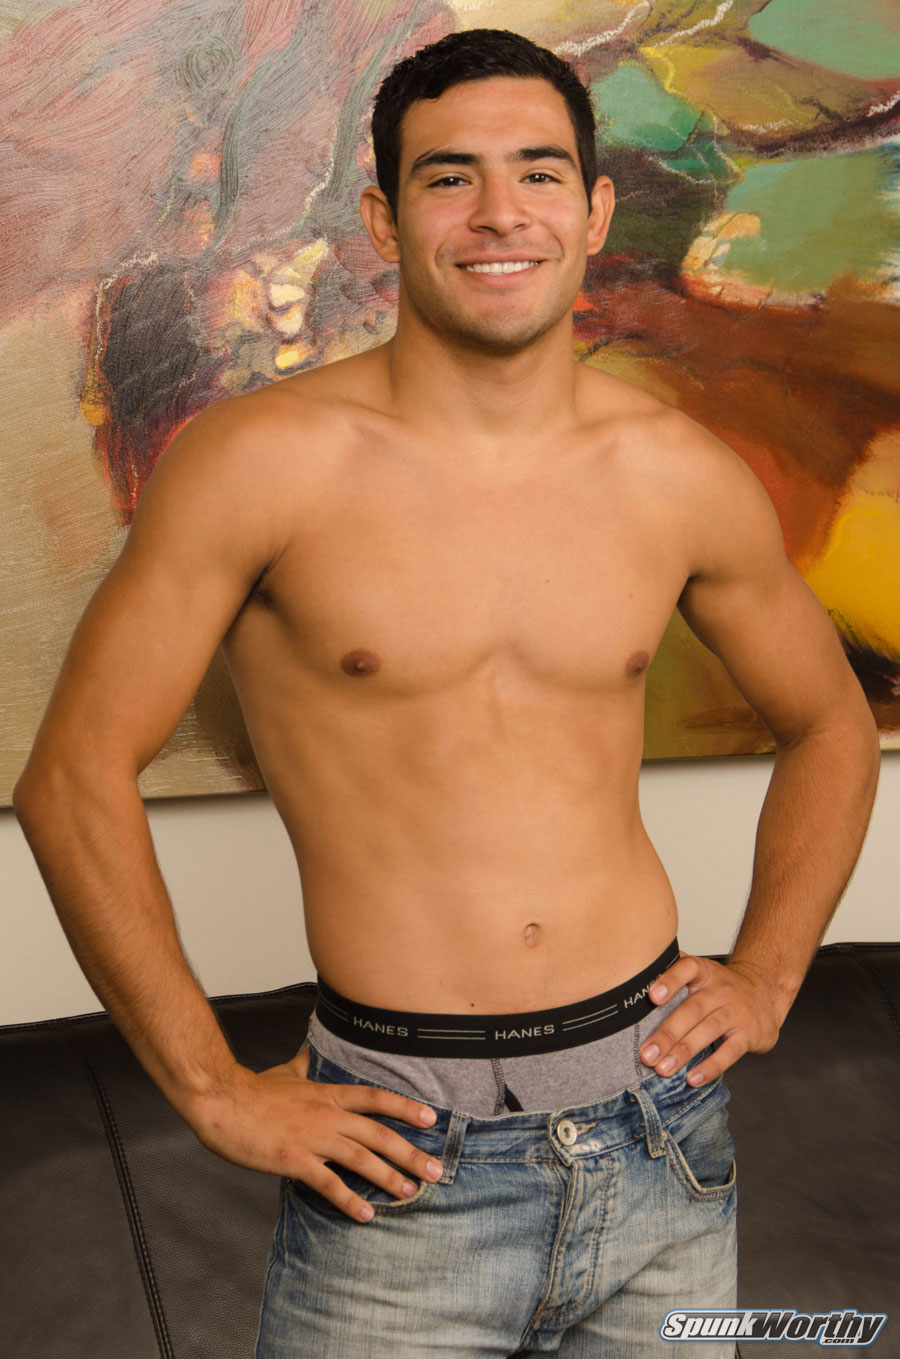 Handsome straight jock in gay porn